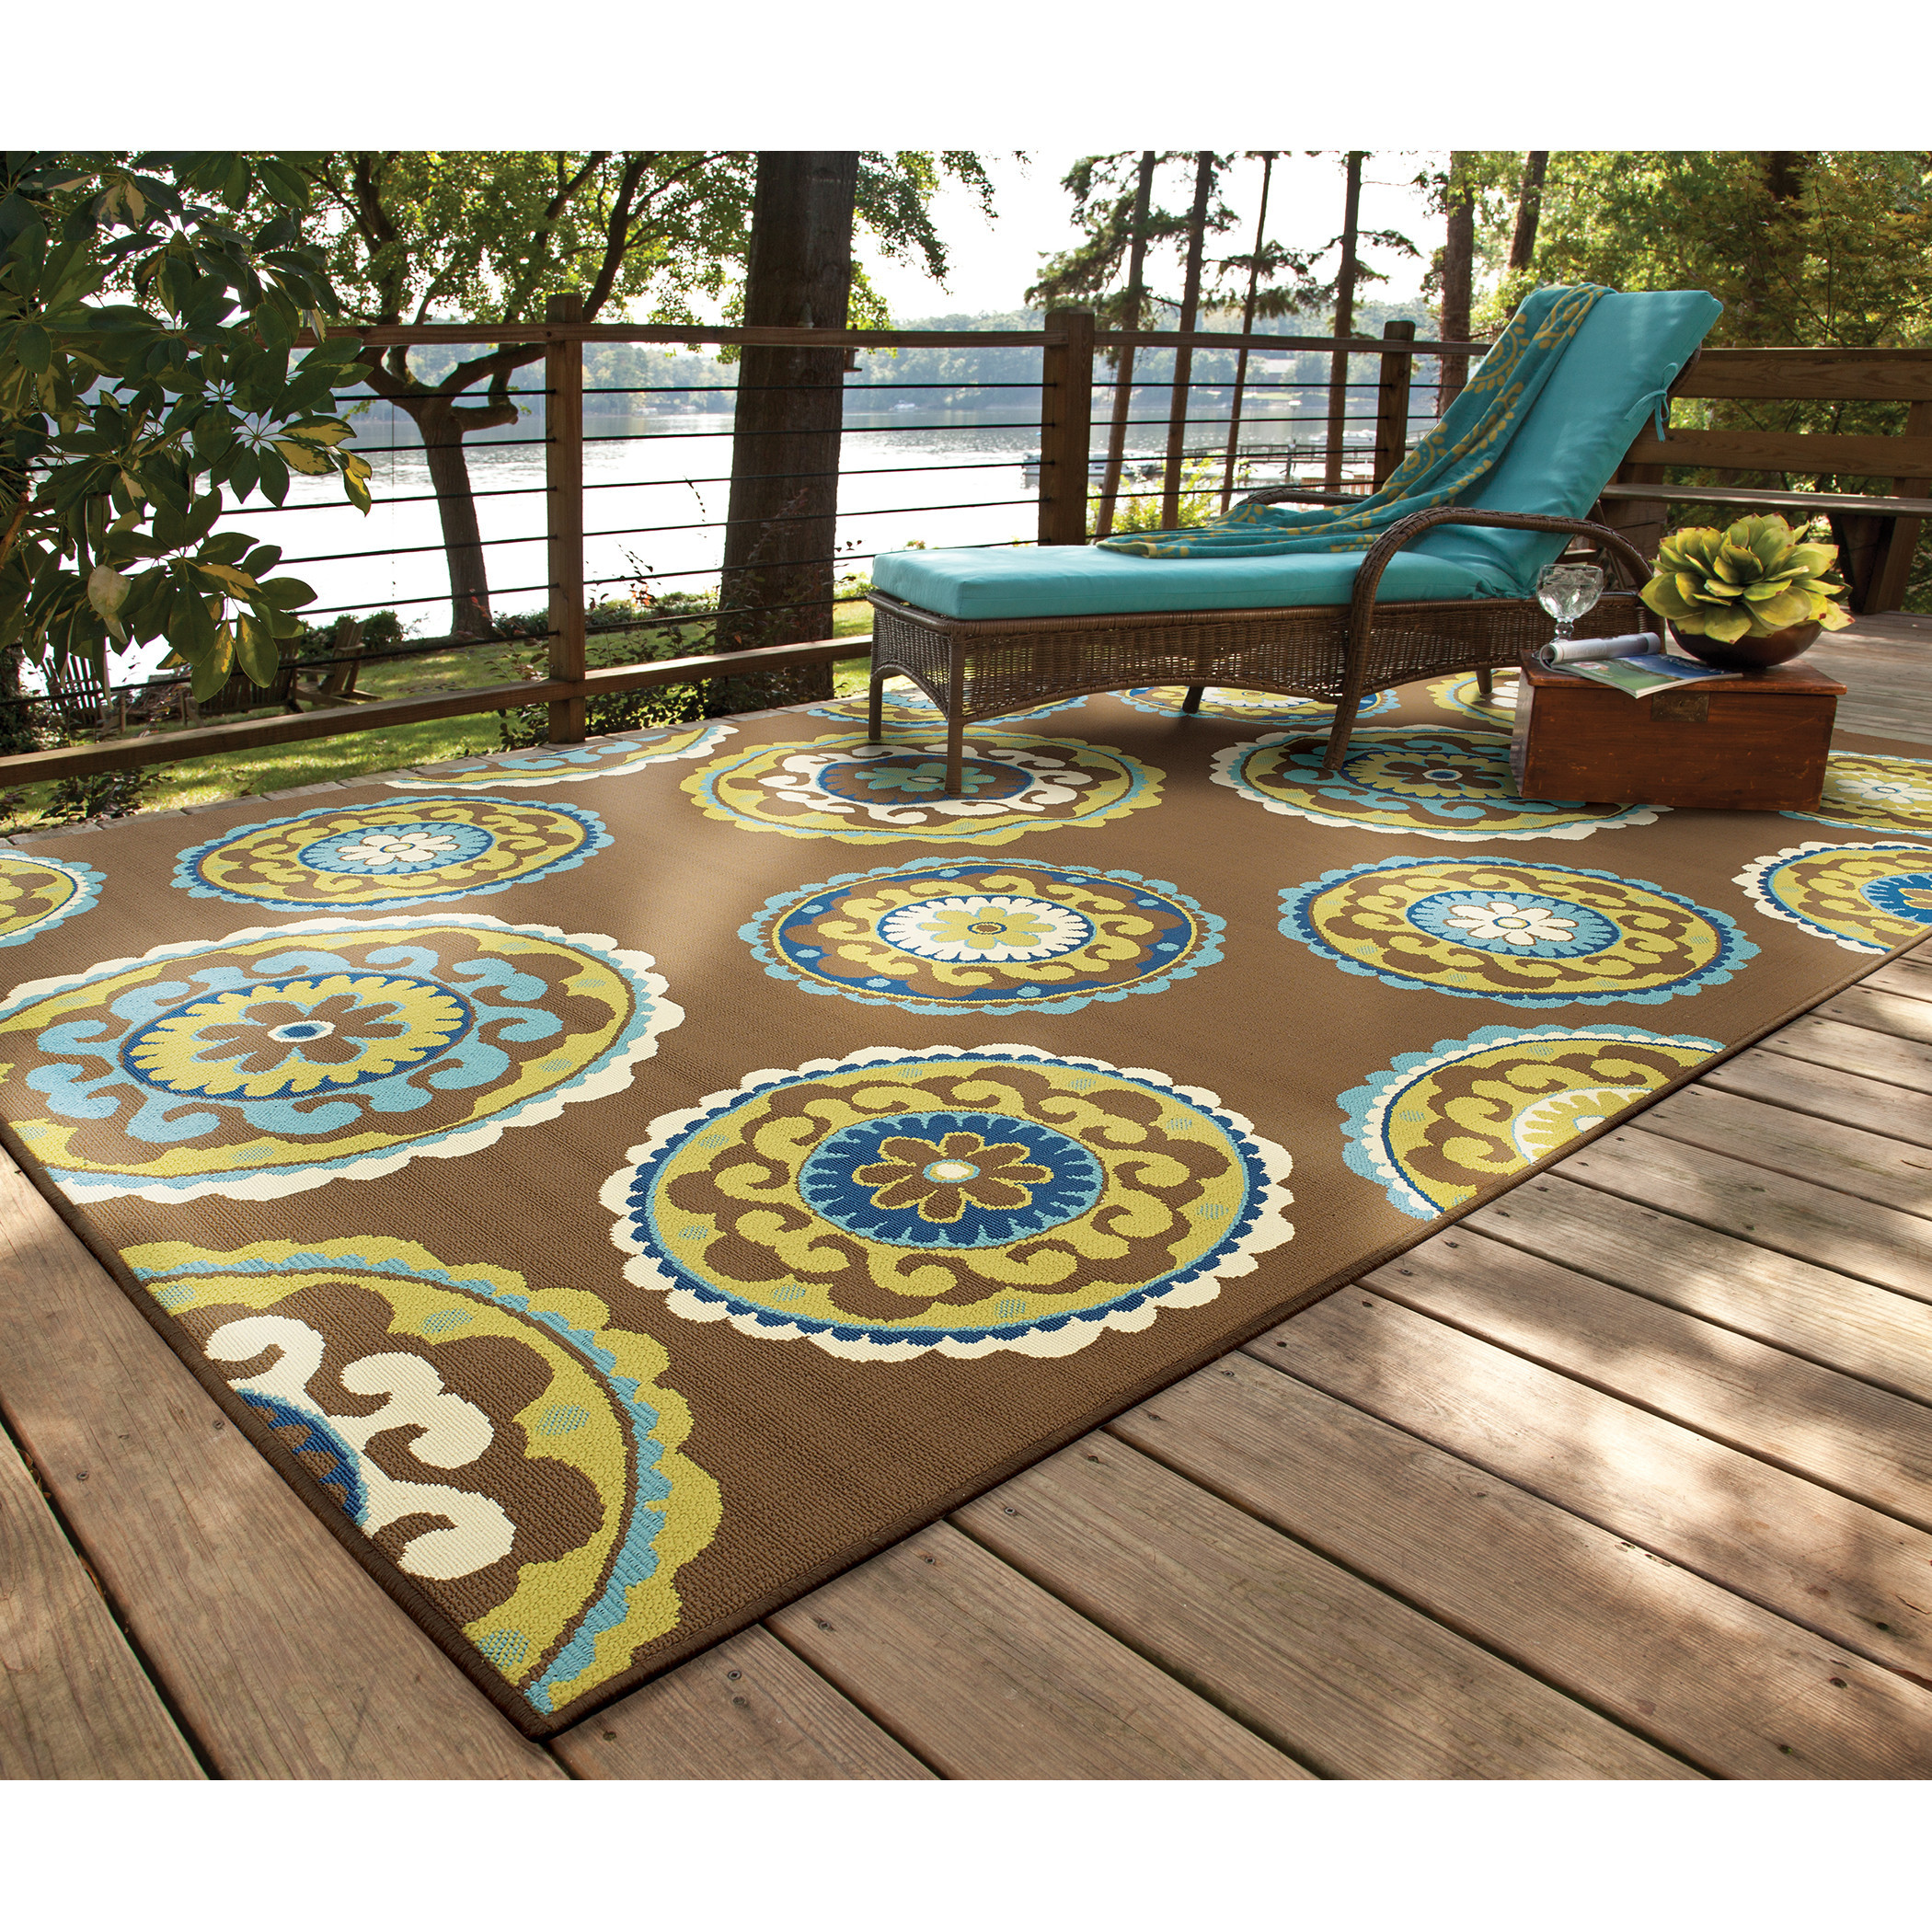 Best ideas about Outdoor Area Rugs . Save or Pin Threadbind Newfield Brown Green Indoor Outdoor Area Rug Now.